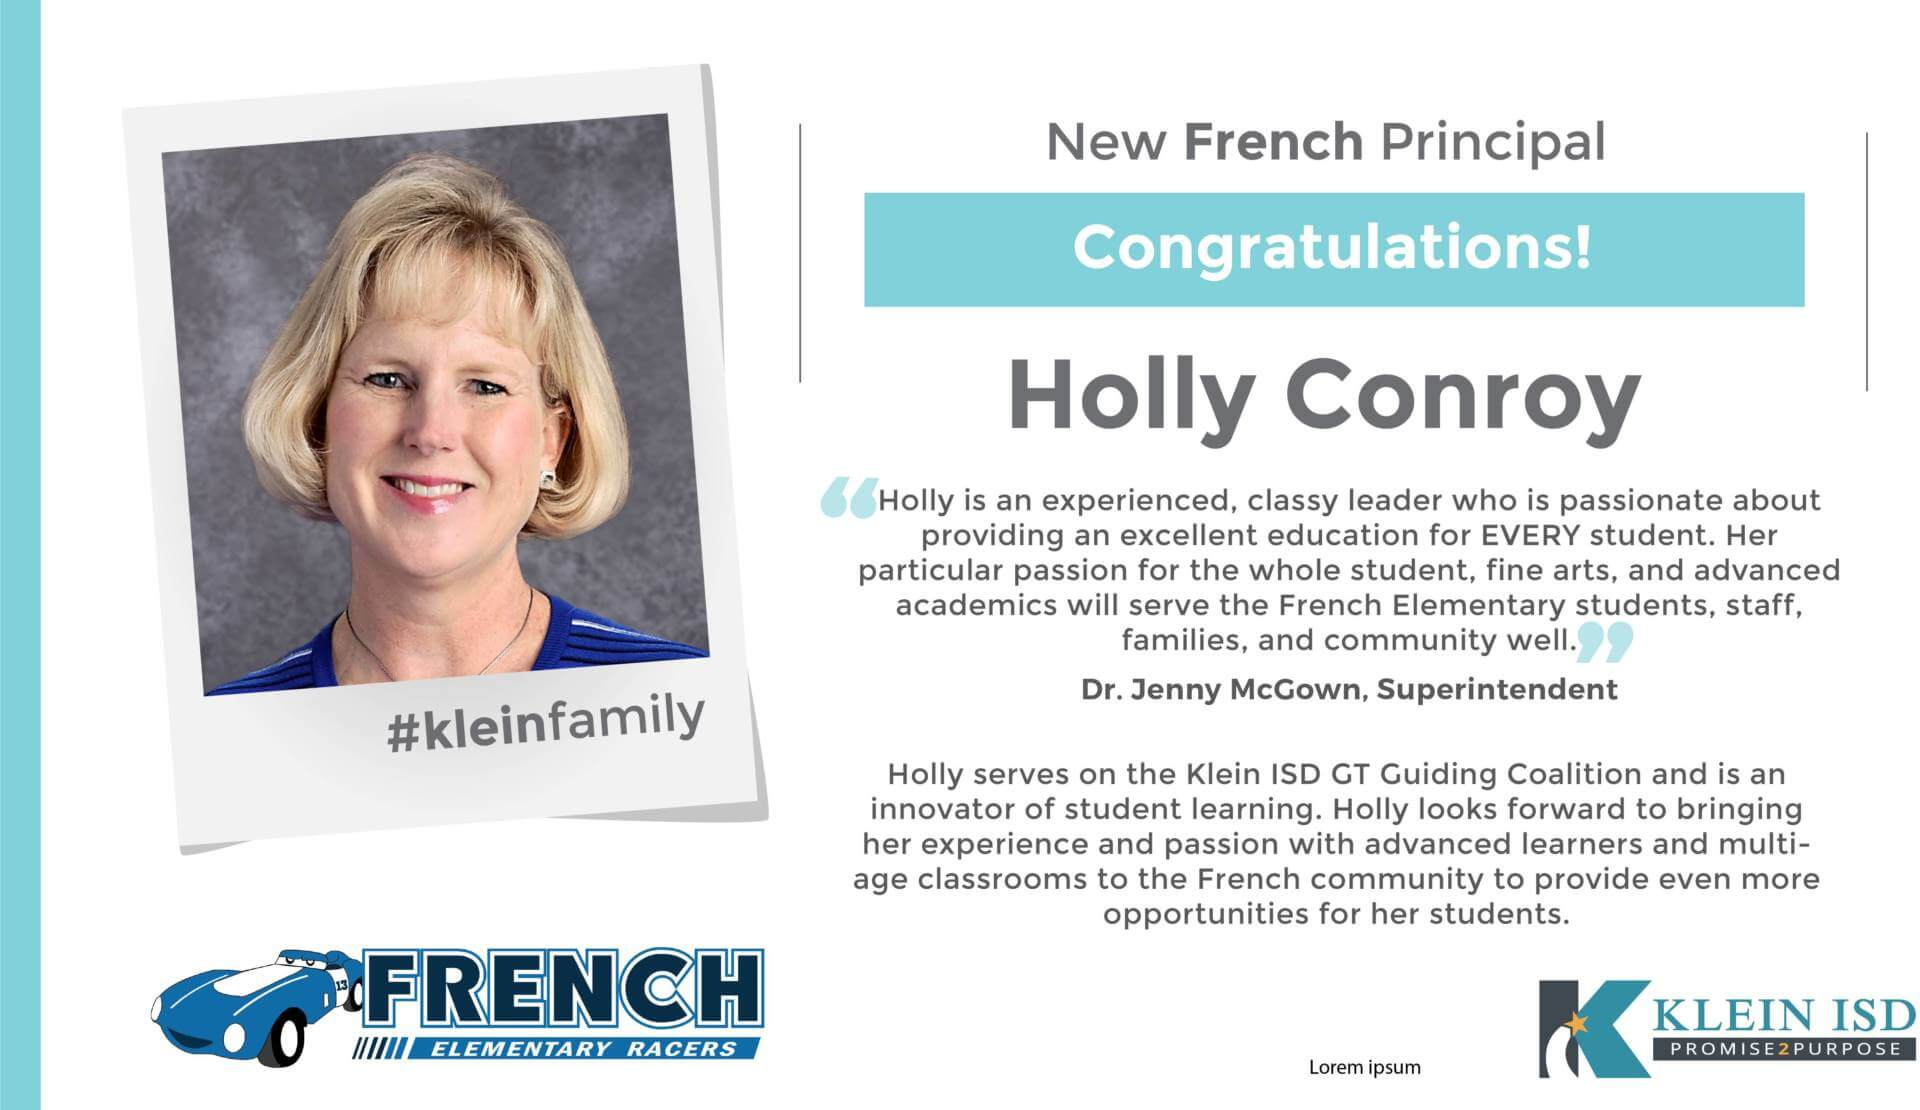 Holly Conroy Announced as French Elementary Principal